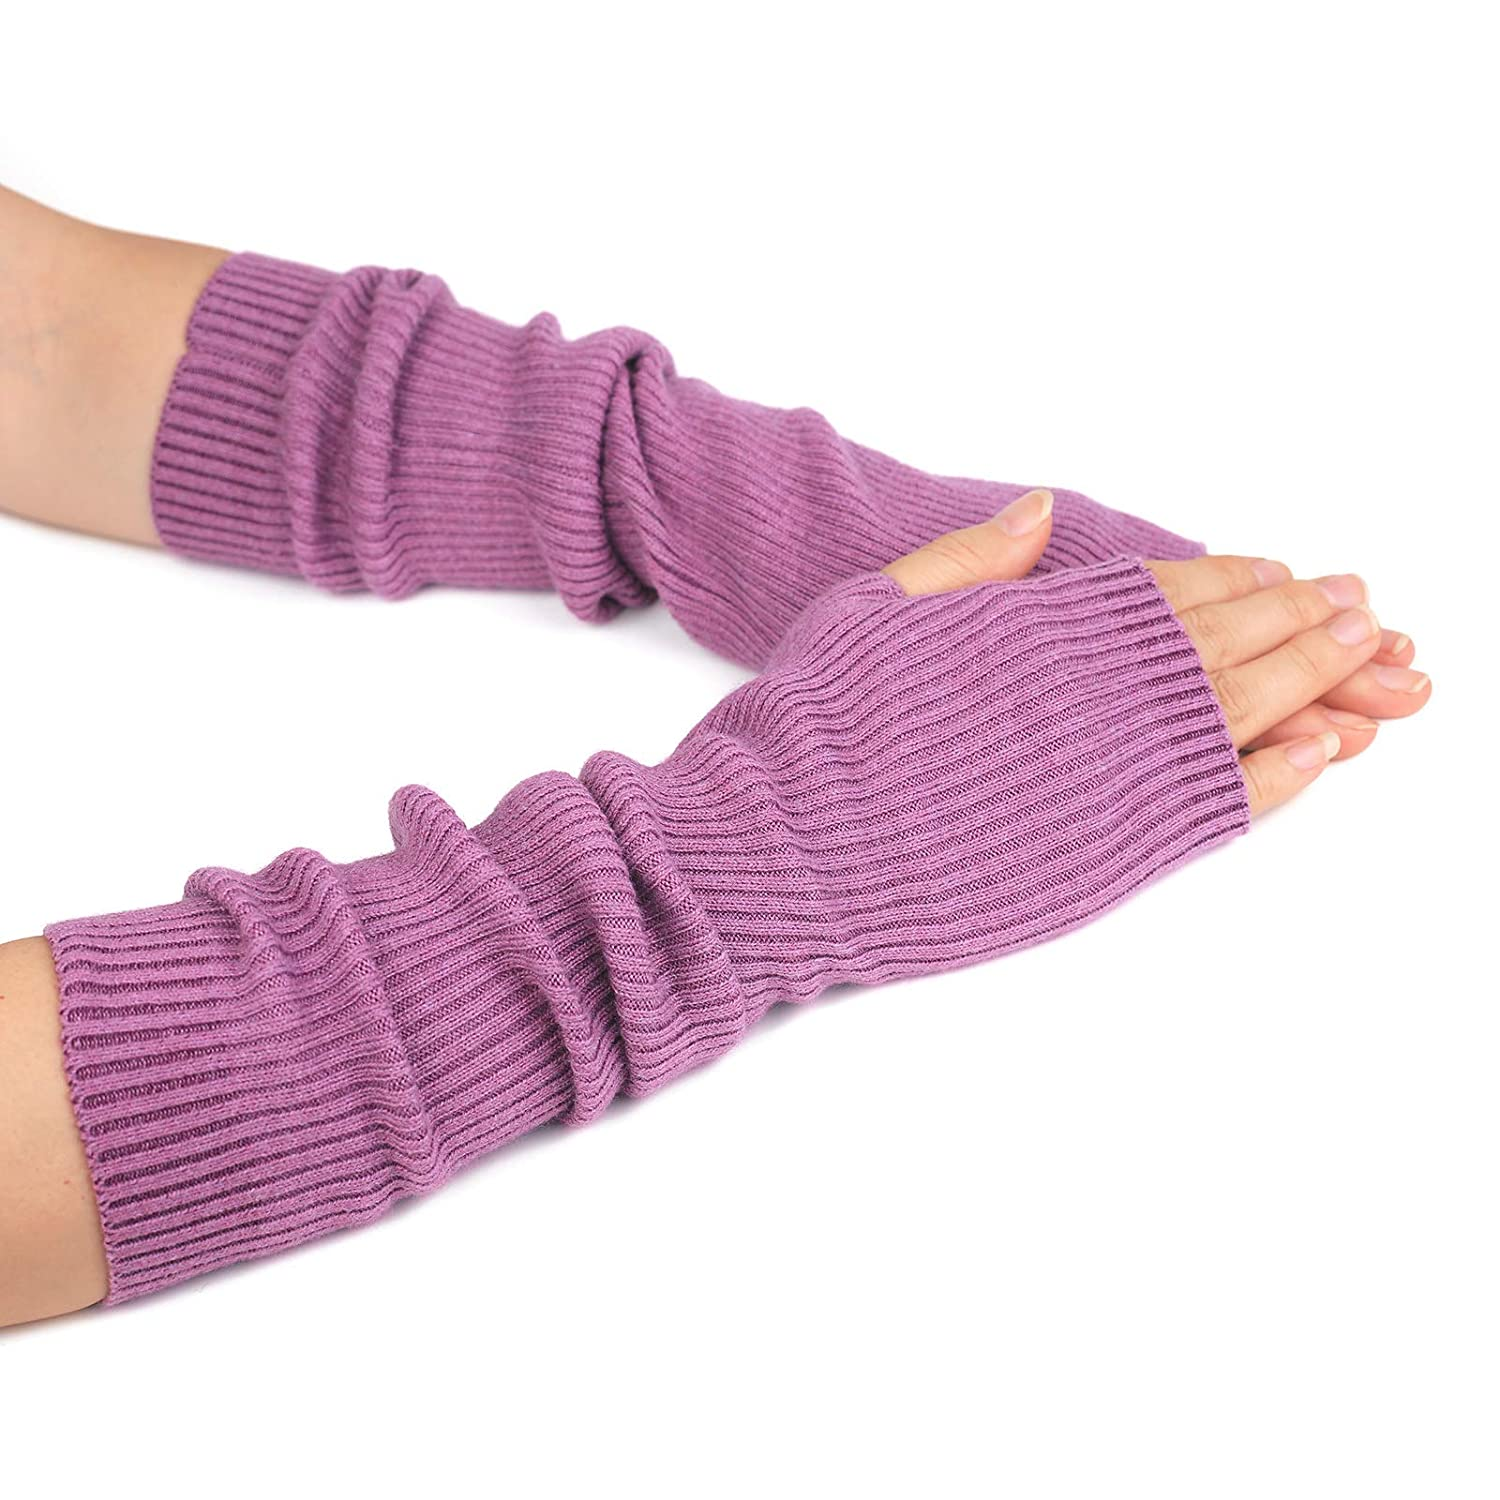 Flammi Women Knit Fingerless Gloves Mittens Arm Warmers Cashmere Thumb Hole Long Gloves M-B2004